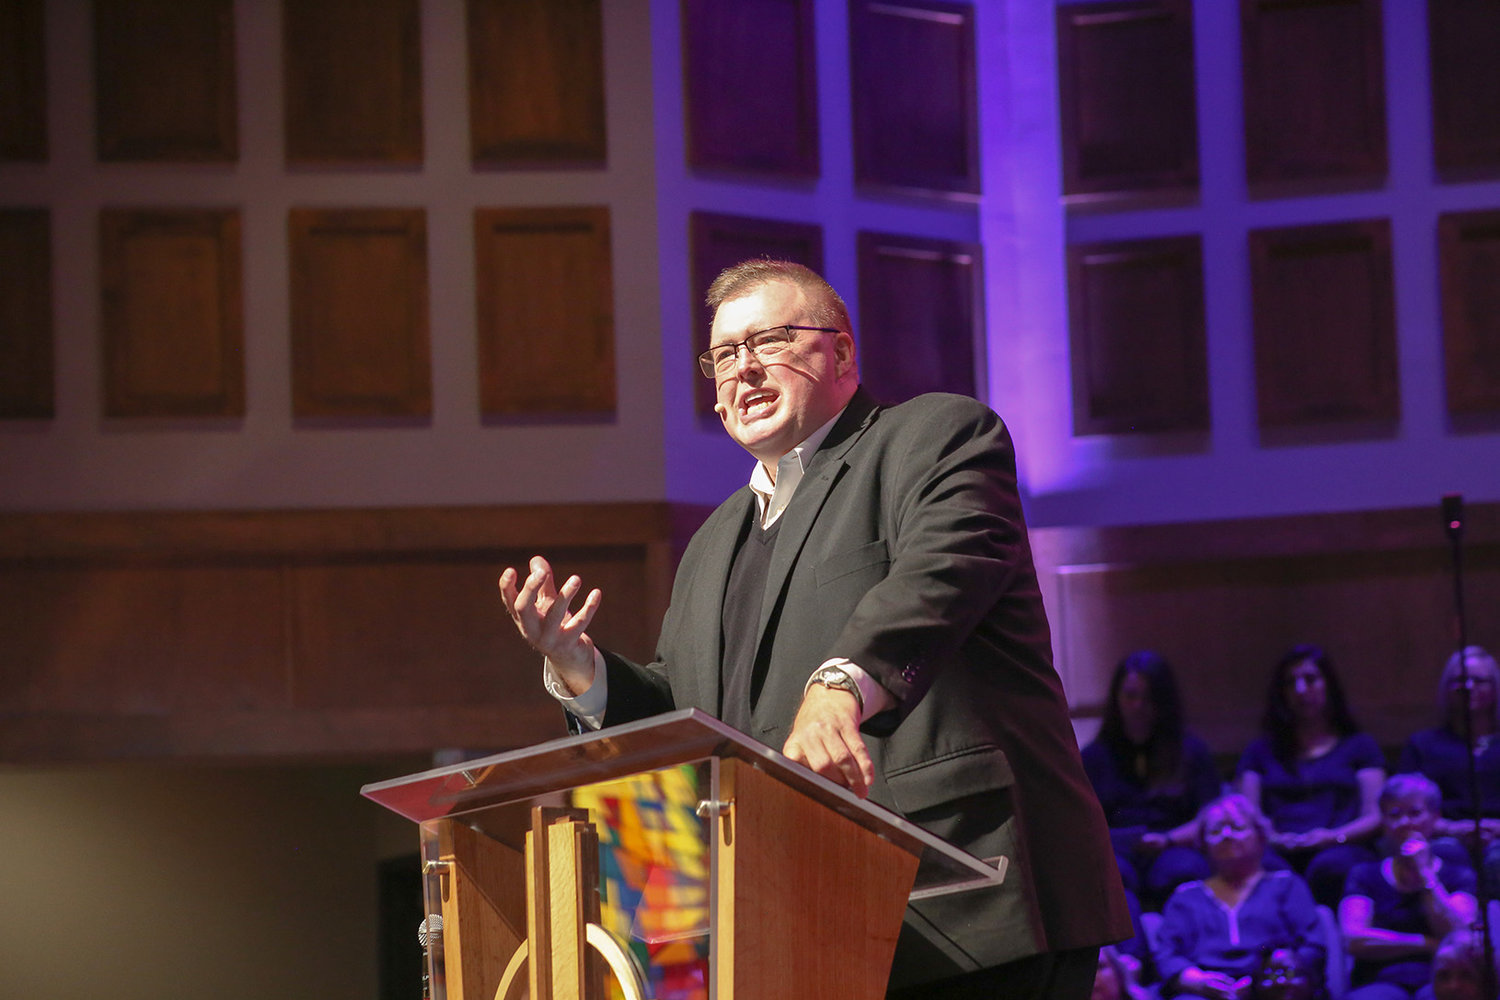 WESTMORE CHURCH OF GOD Lead Pastor Kelvin Page speaks to the congregation during the recent dedication service of the church's new sanctuary.